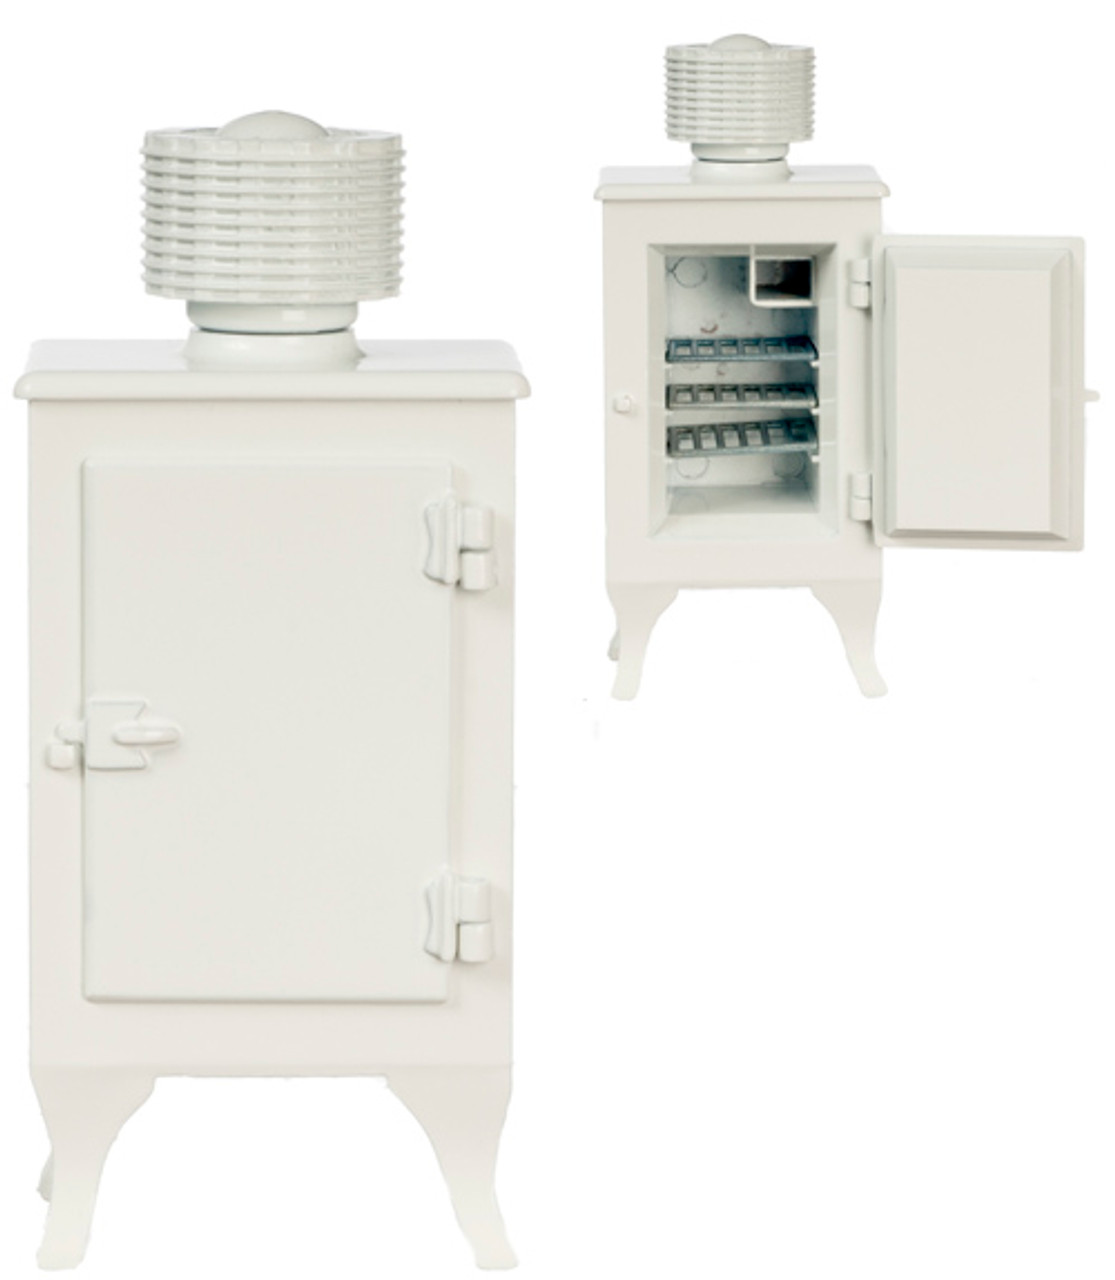 Dollhouse City - Dollhouse Miniatures Monitor Top Refrigerator - Metal and White